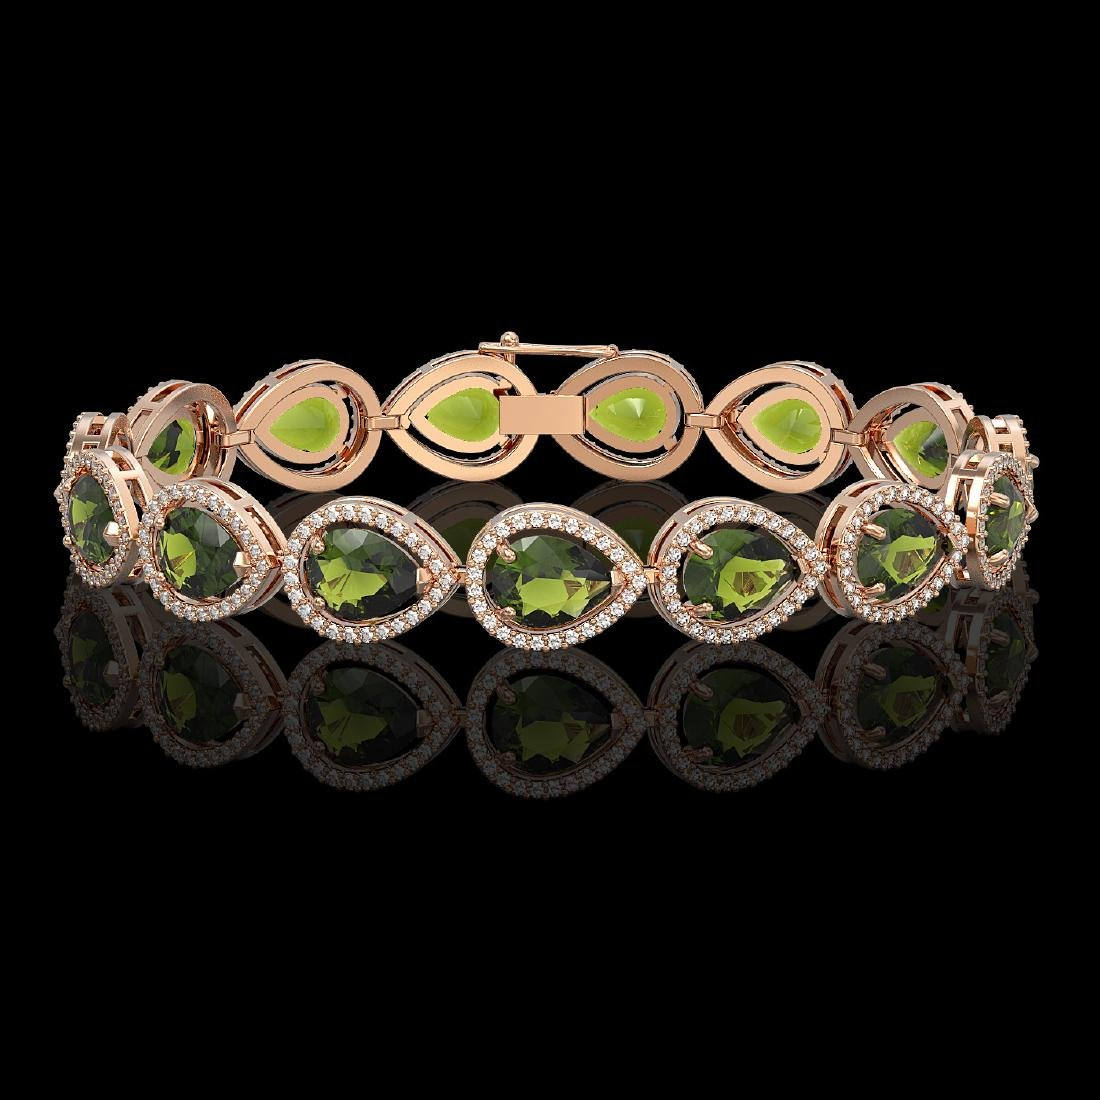 19.7 CTW Tourmaline & Diamond Halo Bracelet 10K Rose